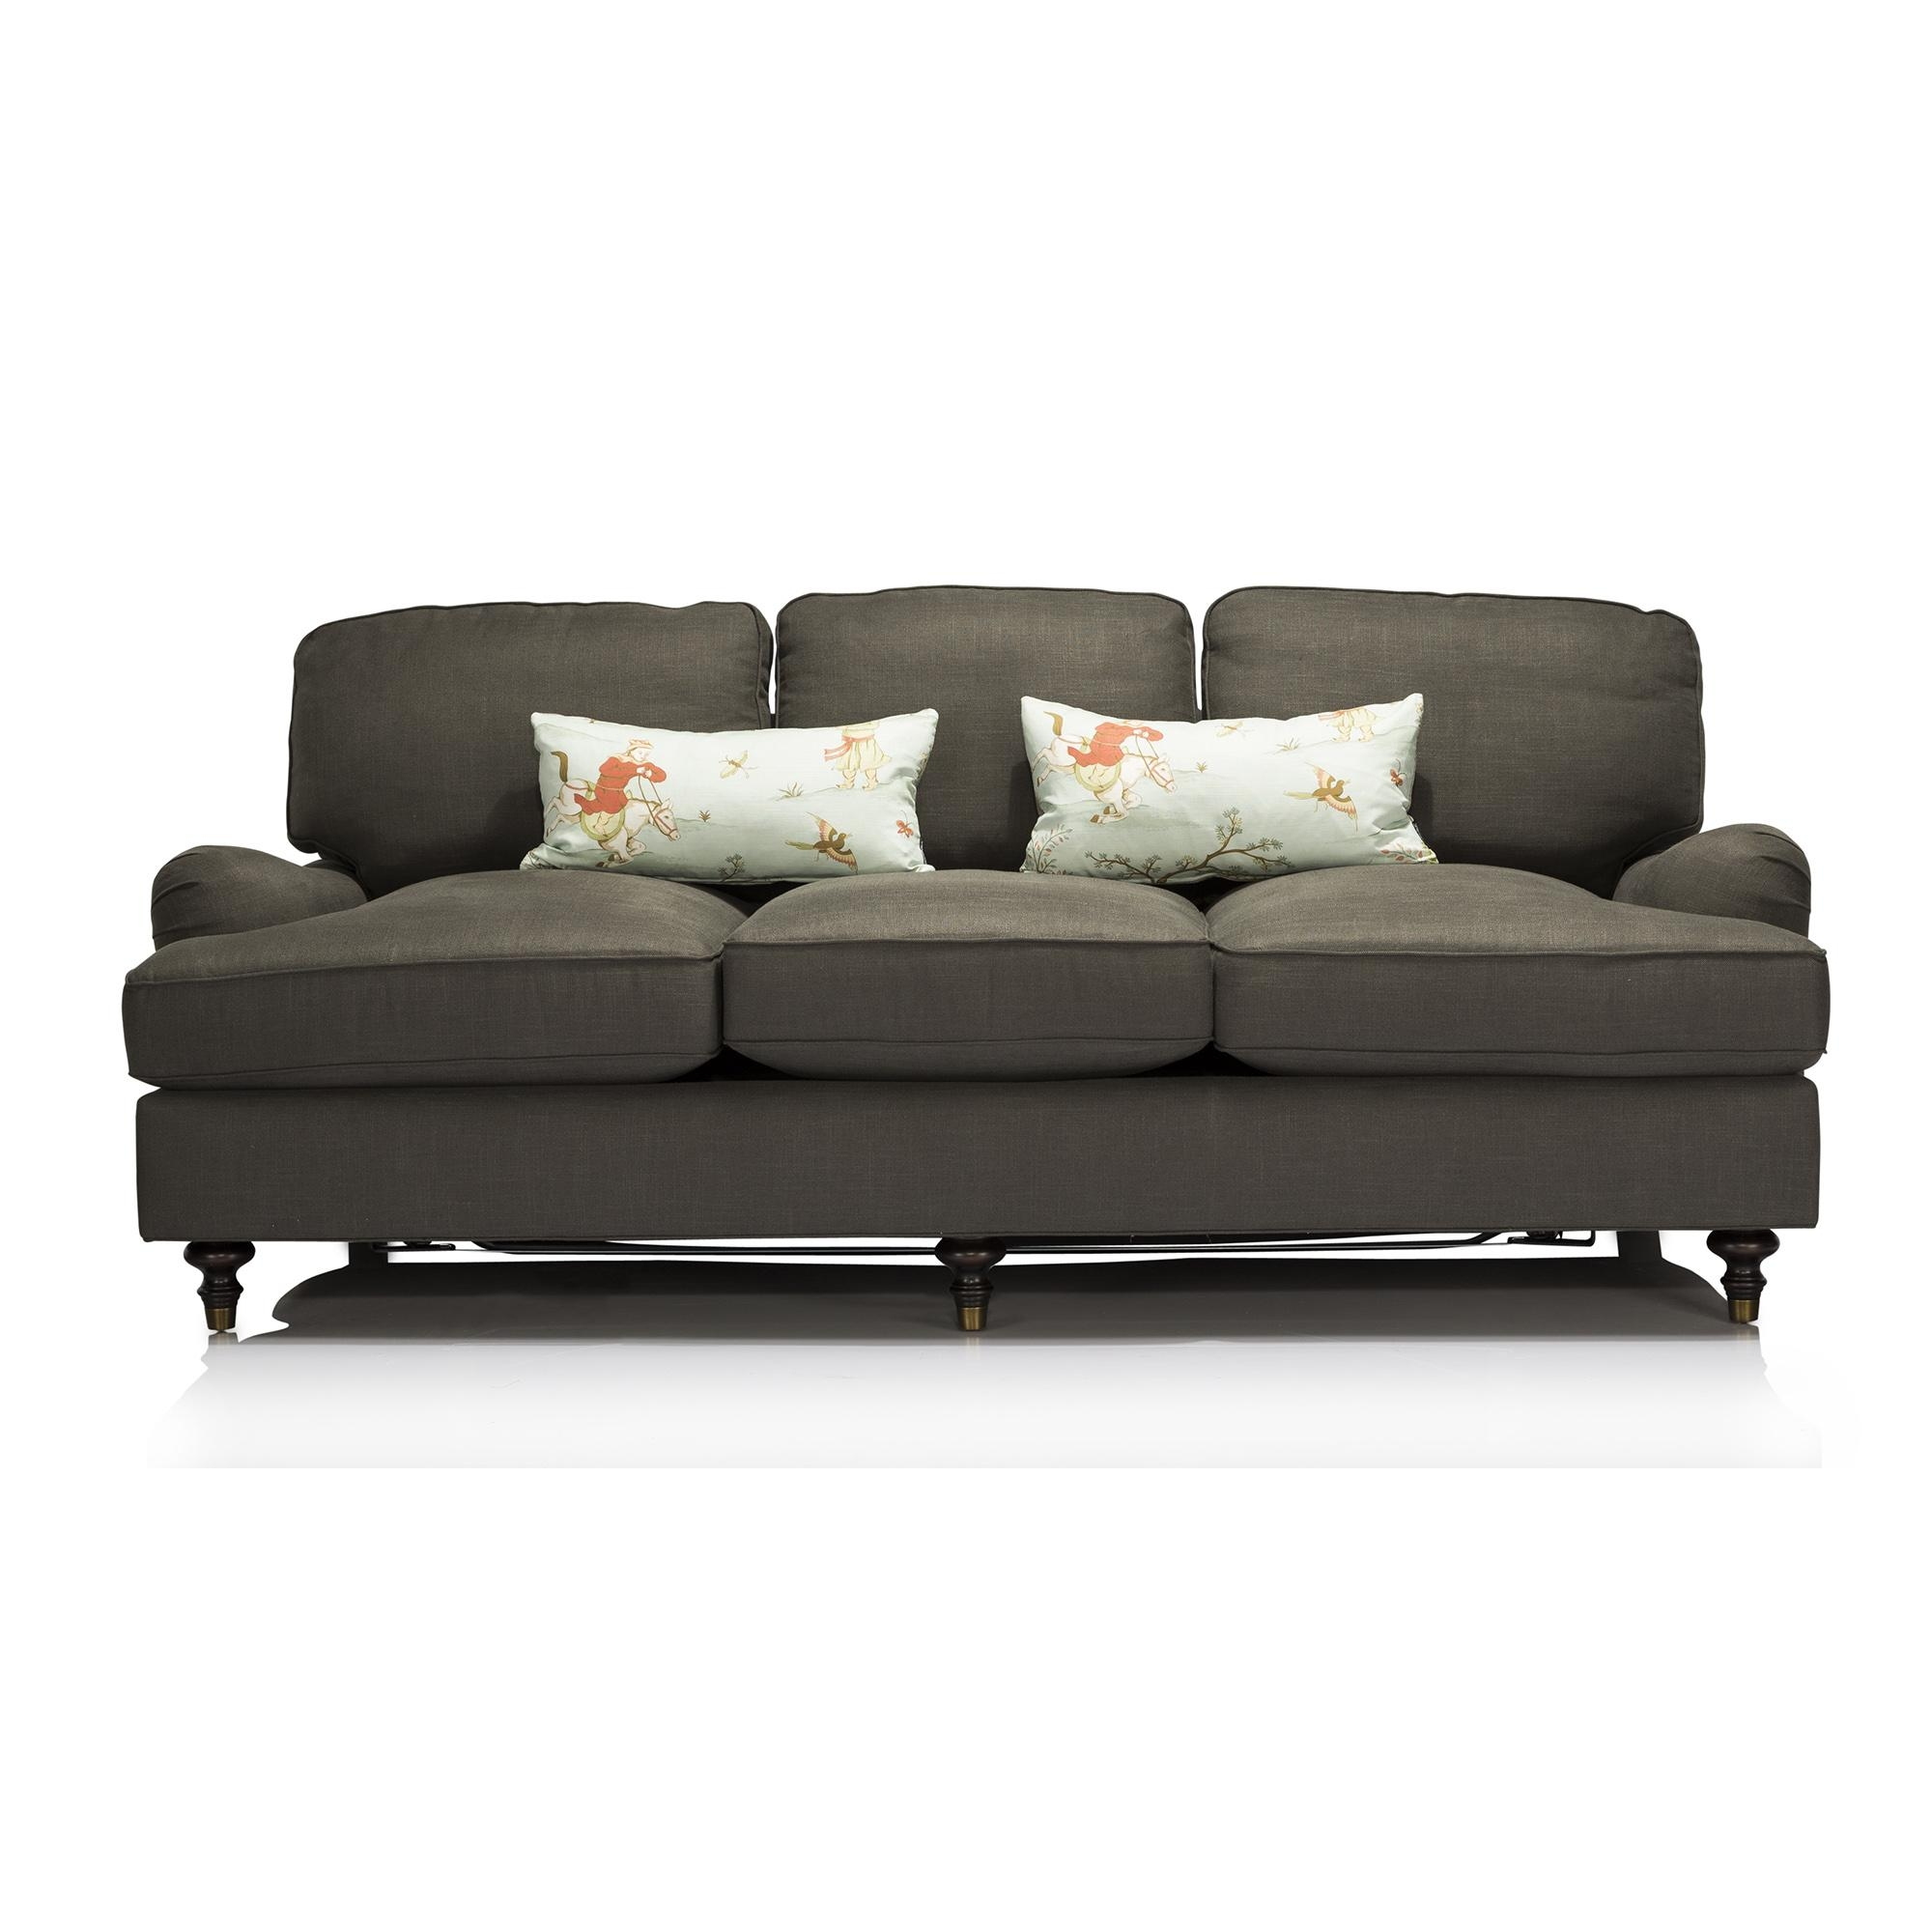 Sofas : Magnificent Sofa Throws Pb Comfort Roll Arm English Roll Pertaining To Classic English Sofas (Image 17 of 21)